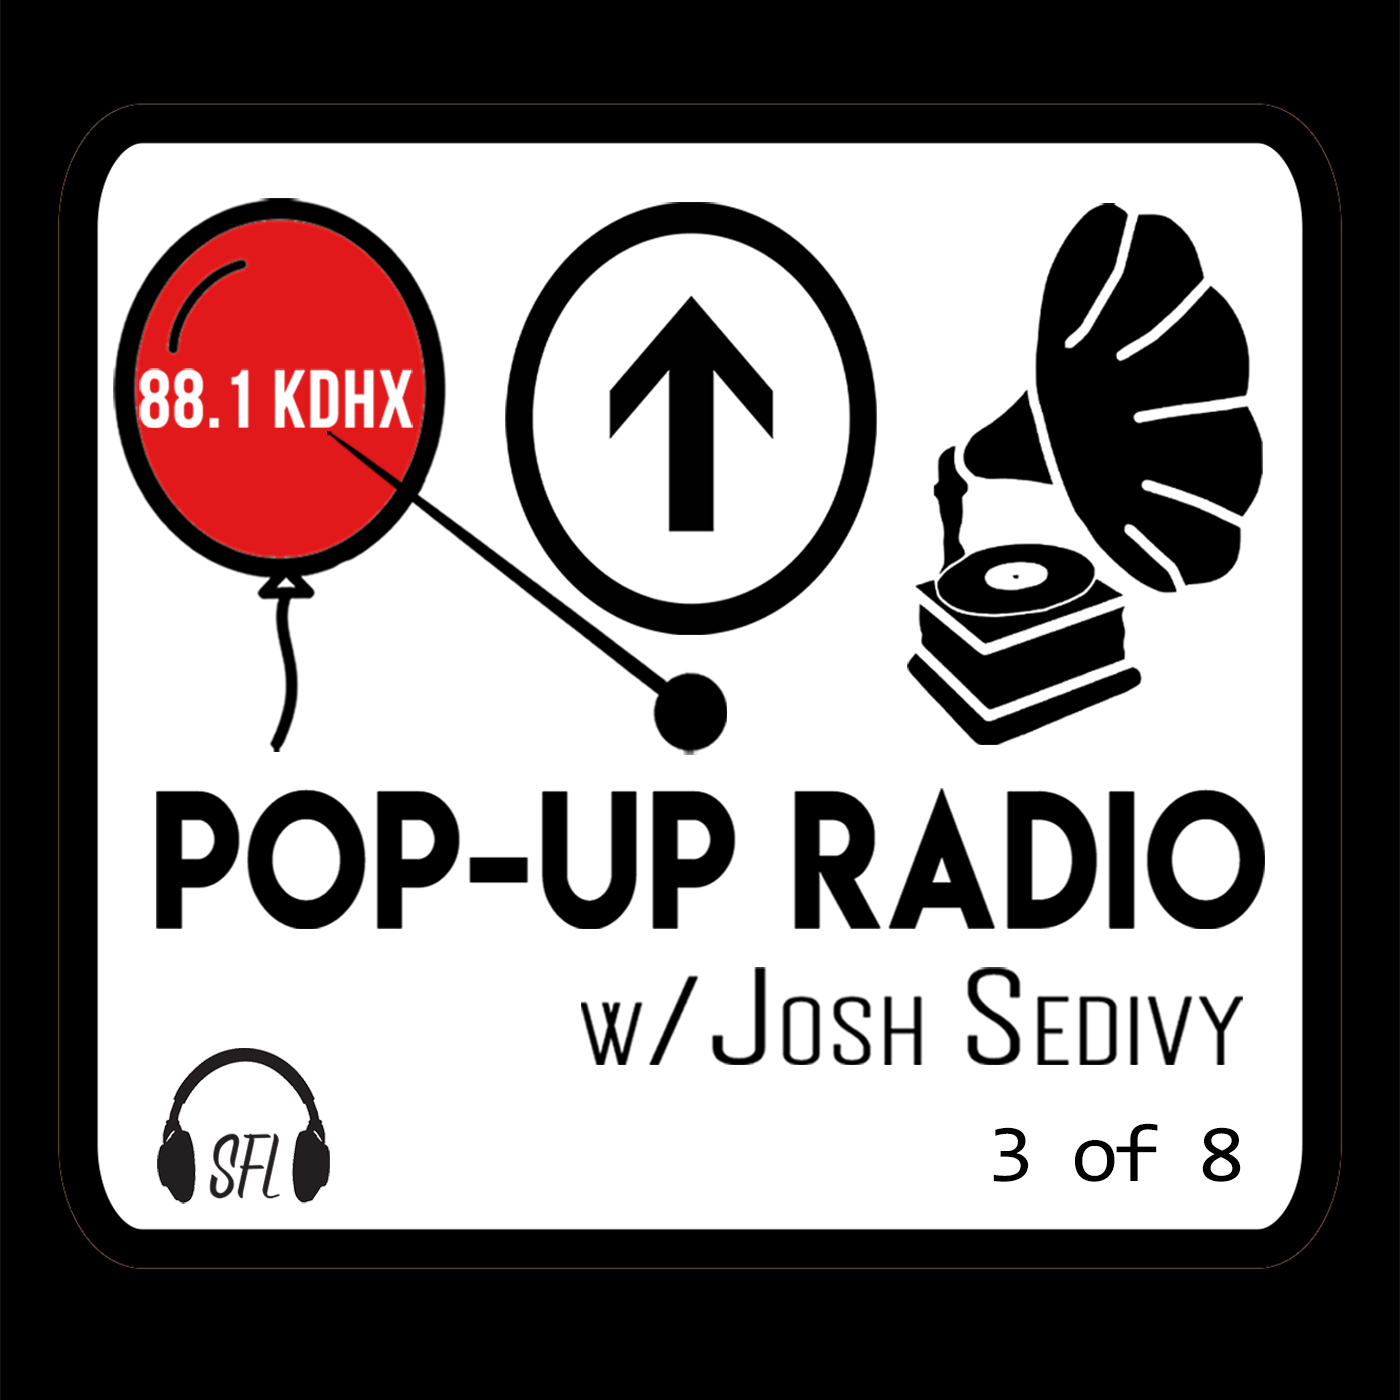 Pop-Up Radio on KDHX - 3